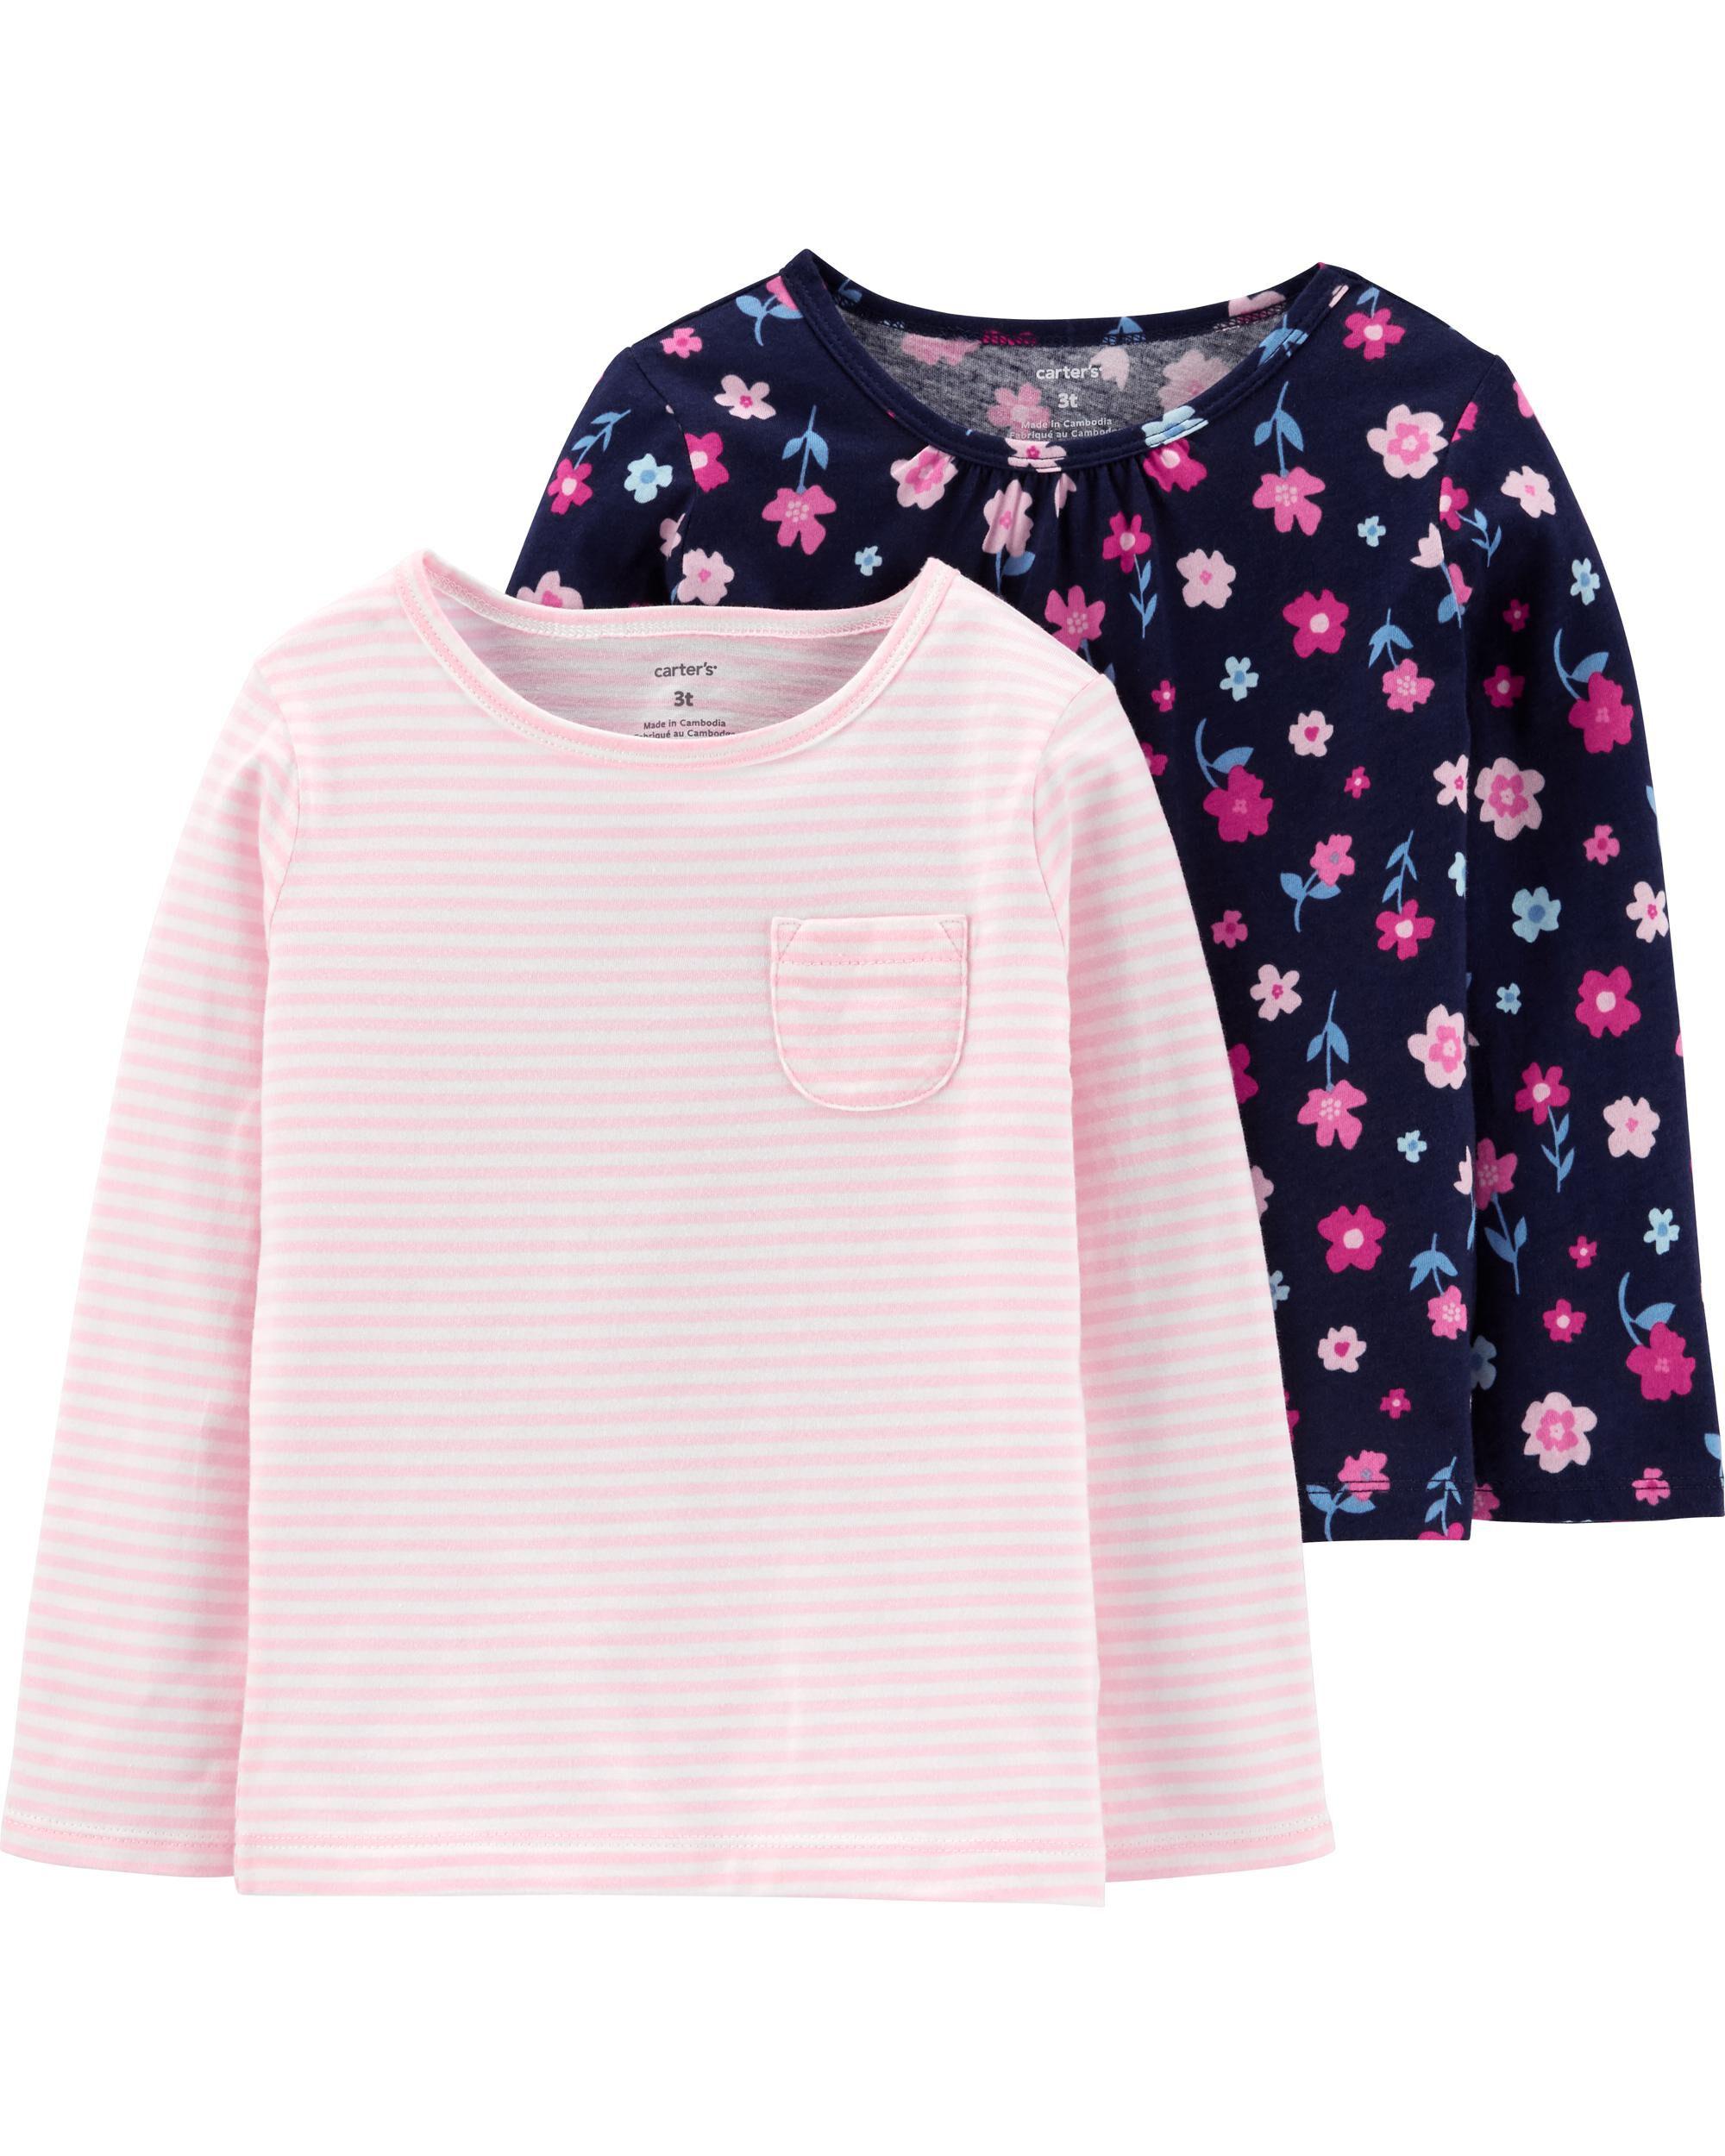 2-Pack Floral & Striped Jersey Tees